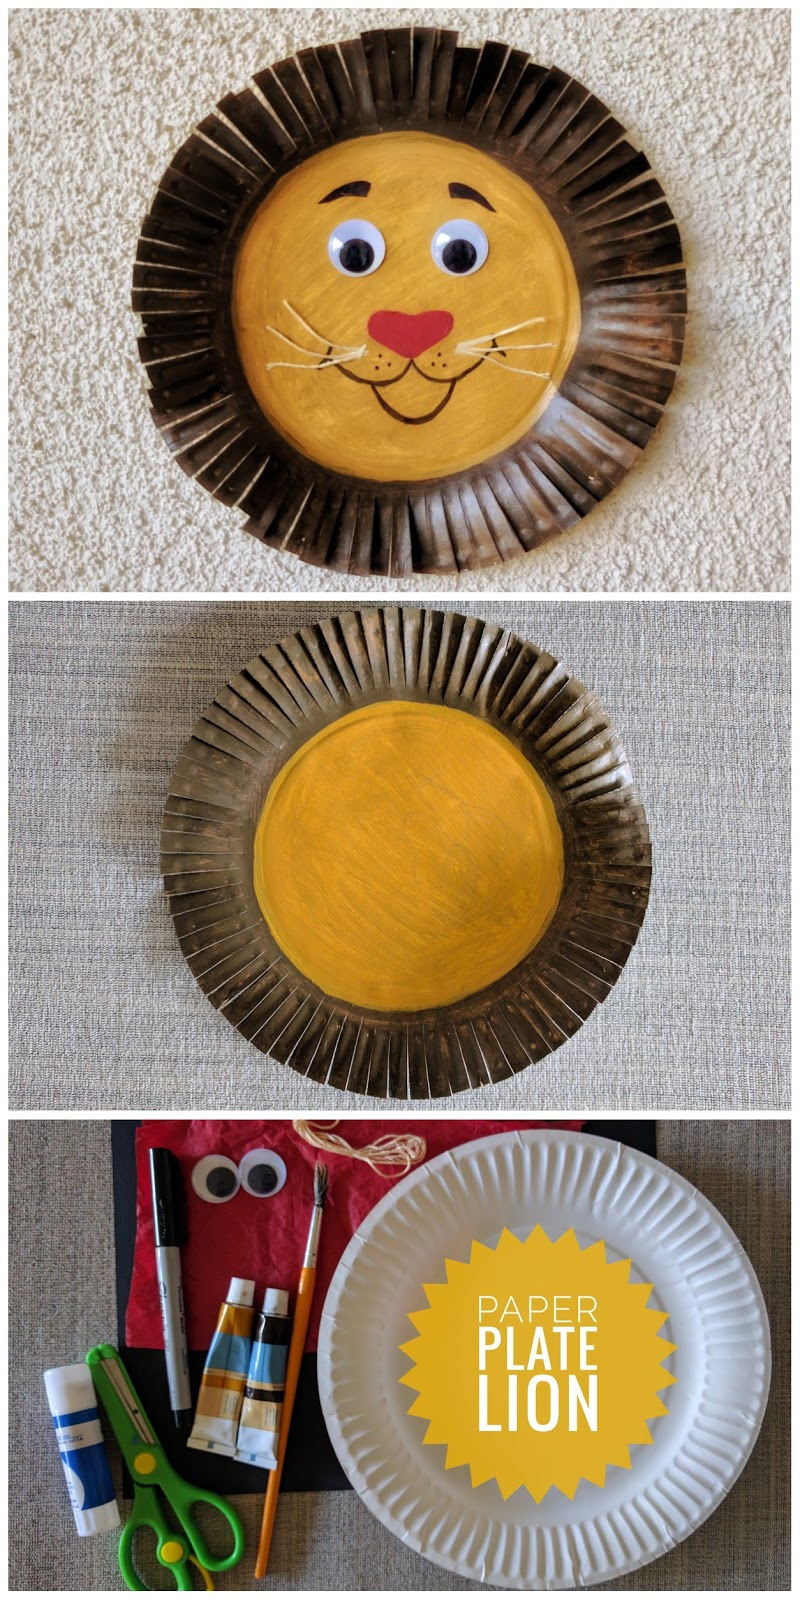 Paper plate, Lion, Kid's craft, craft for kids, Lion craft, easy craft, zootopia, mayor lionheart, crafty mom, crafty kid